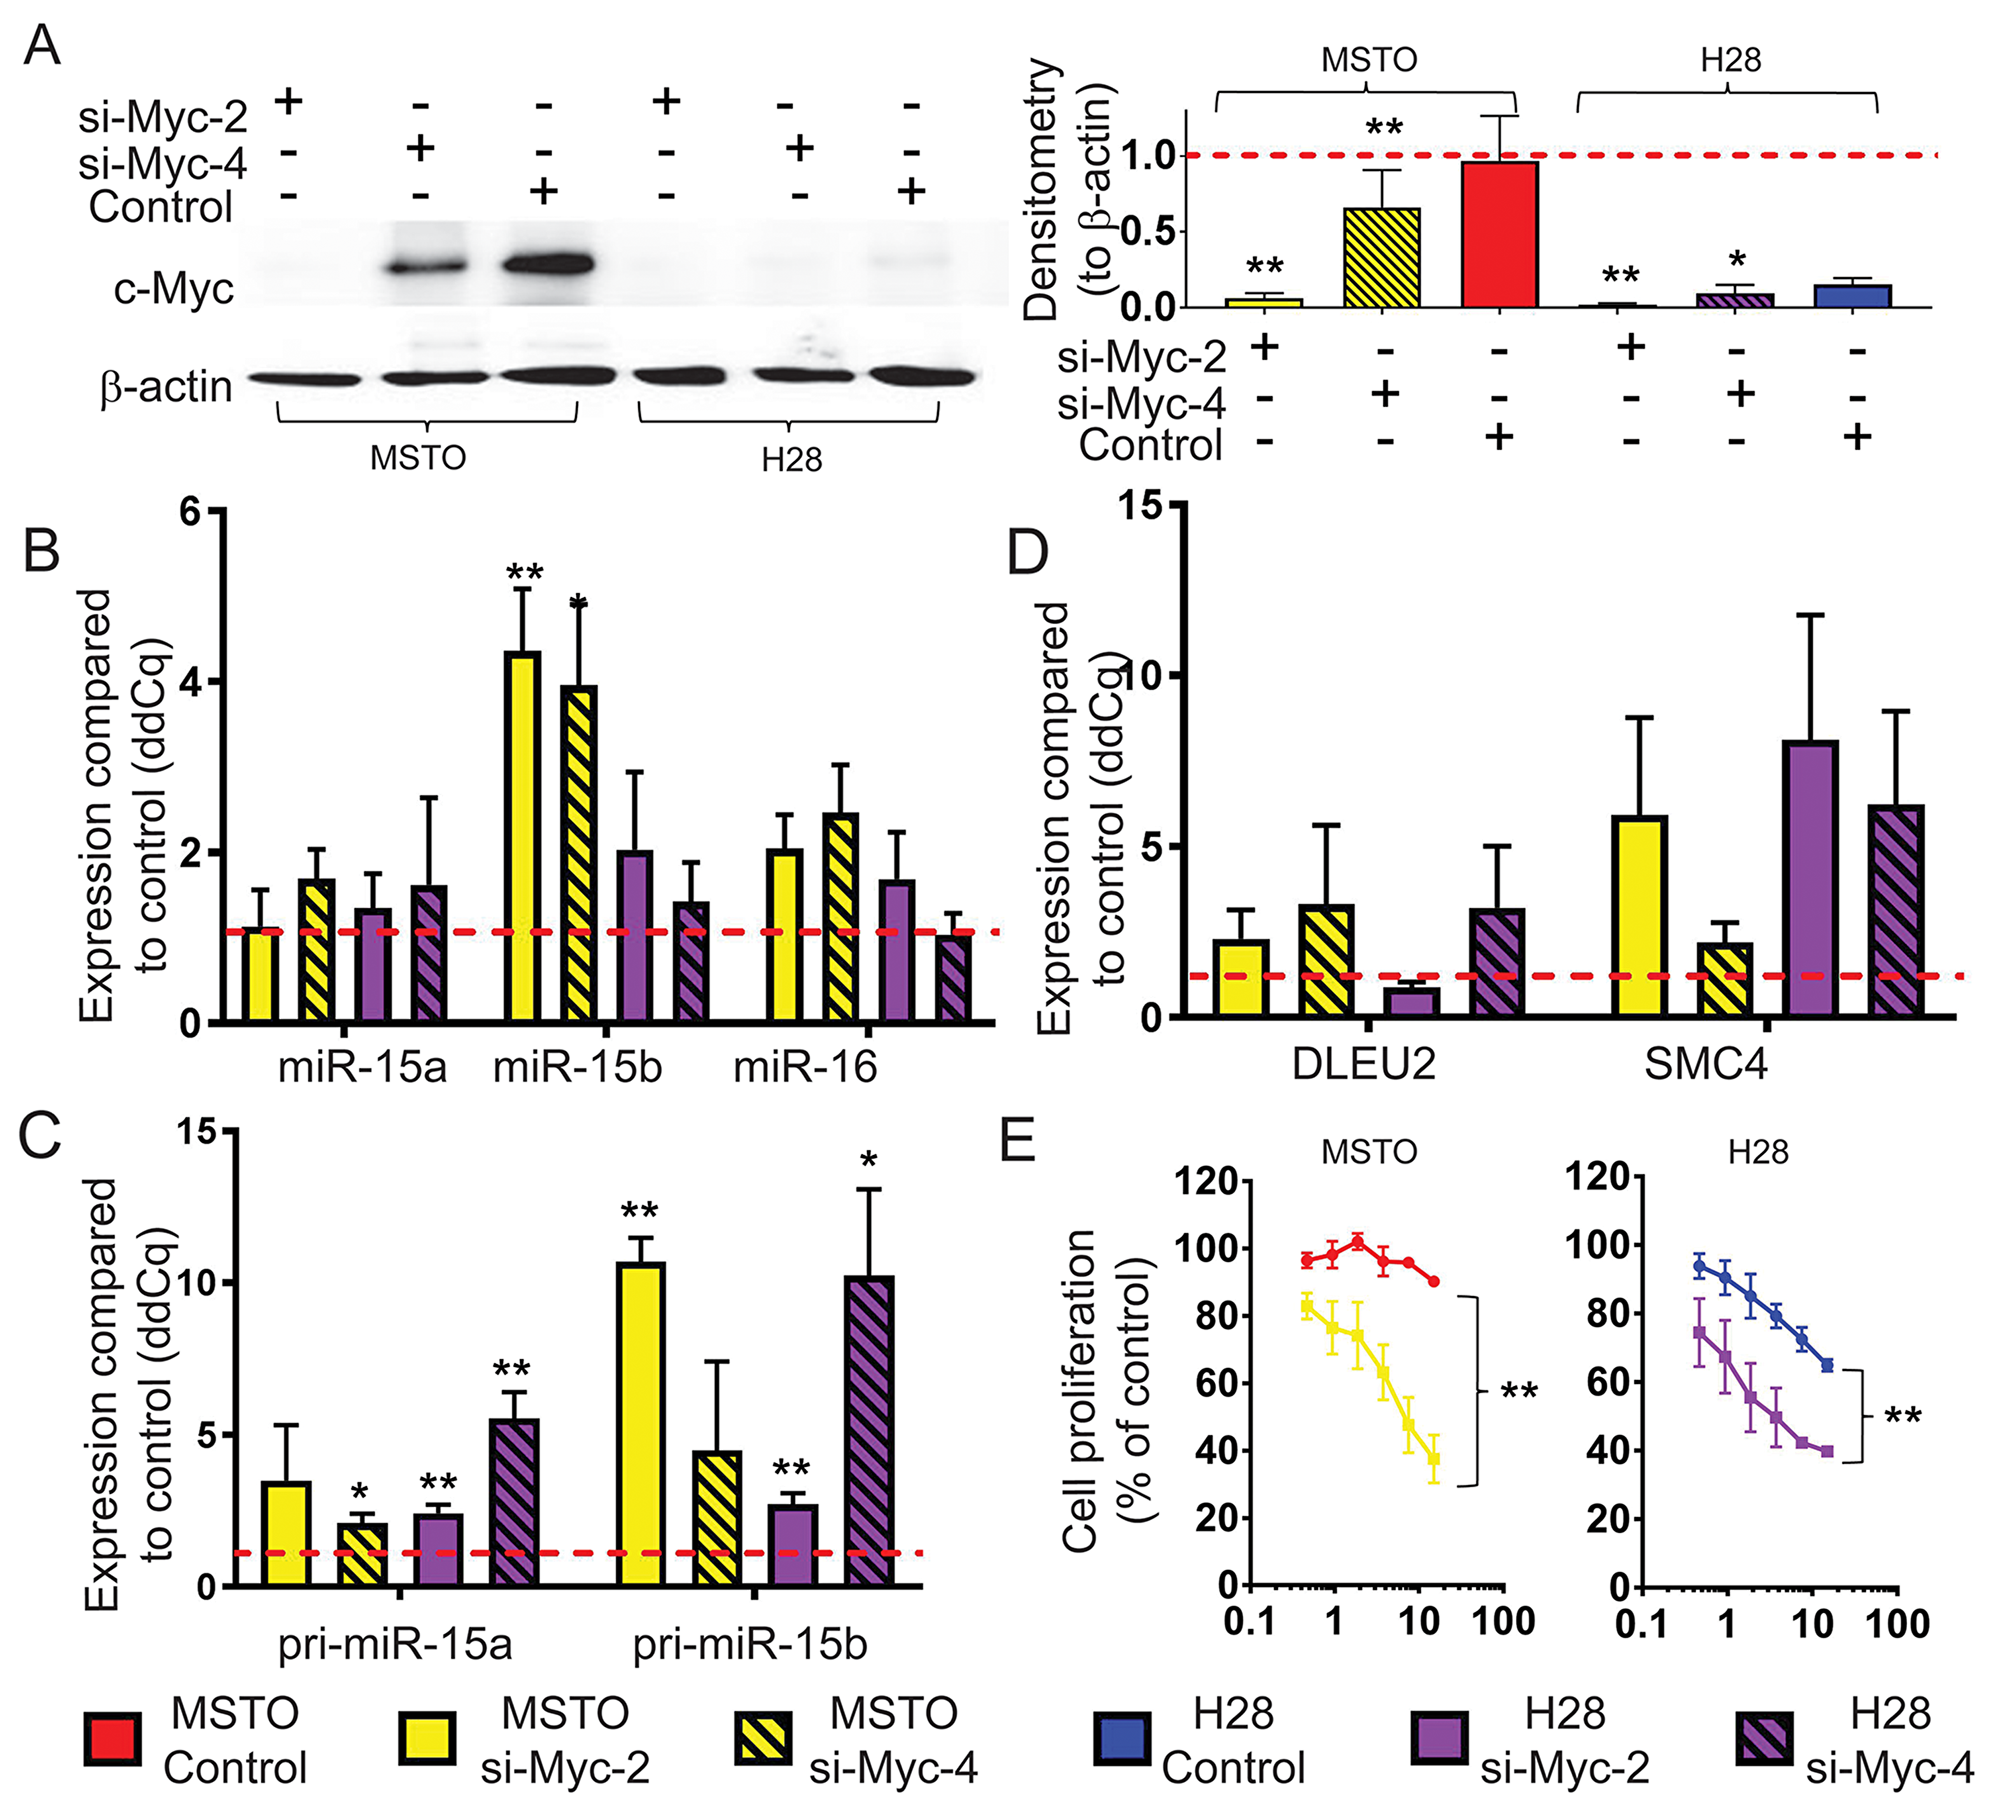 Myc knockdown causes an upregulation of mature miR-15b/16-2 expression and its processing intermediates and inhibits cell growth.